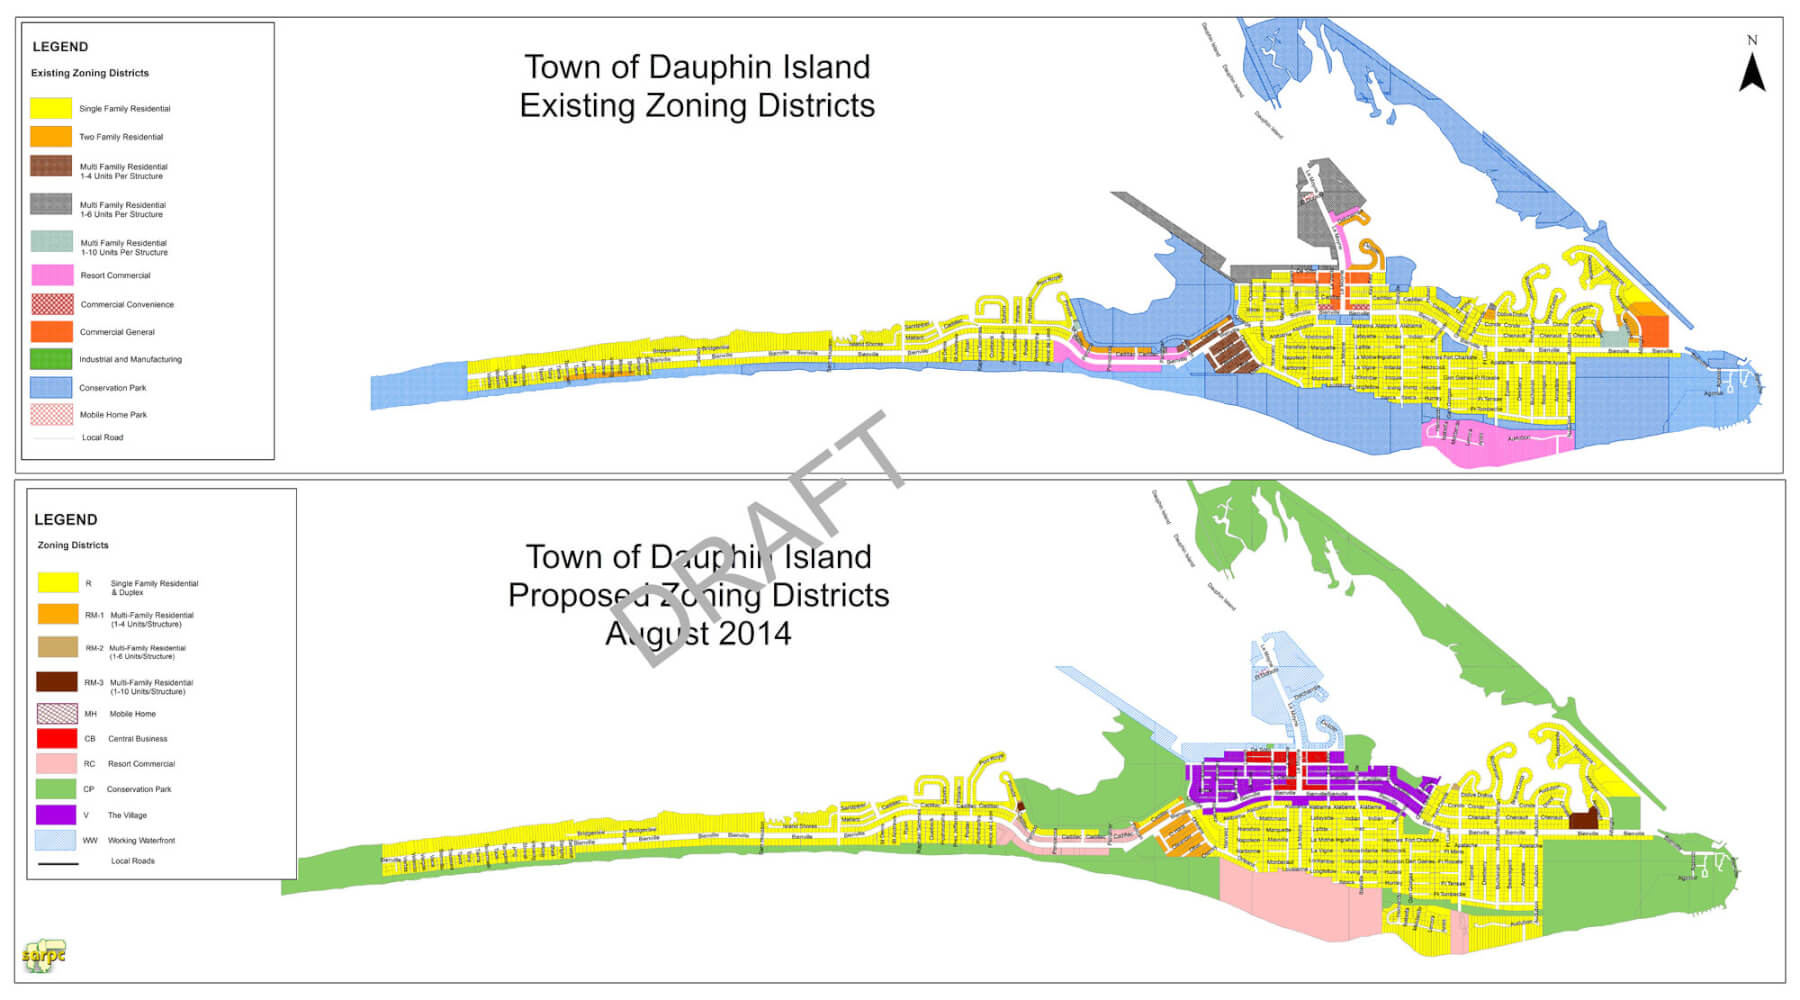 Public input delays Dauphin Island zoning changes